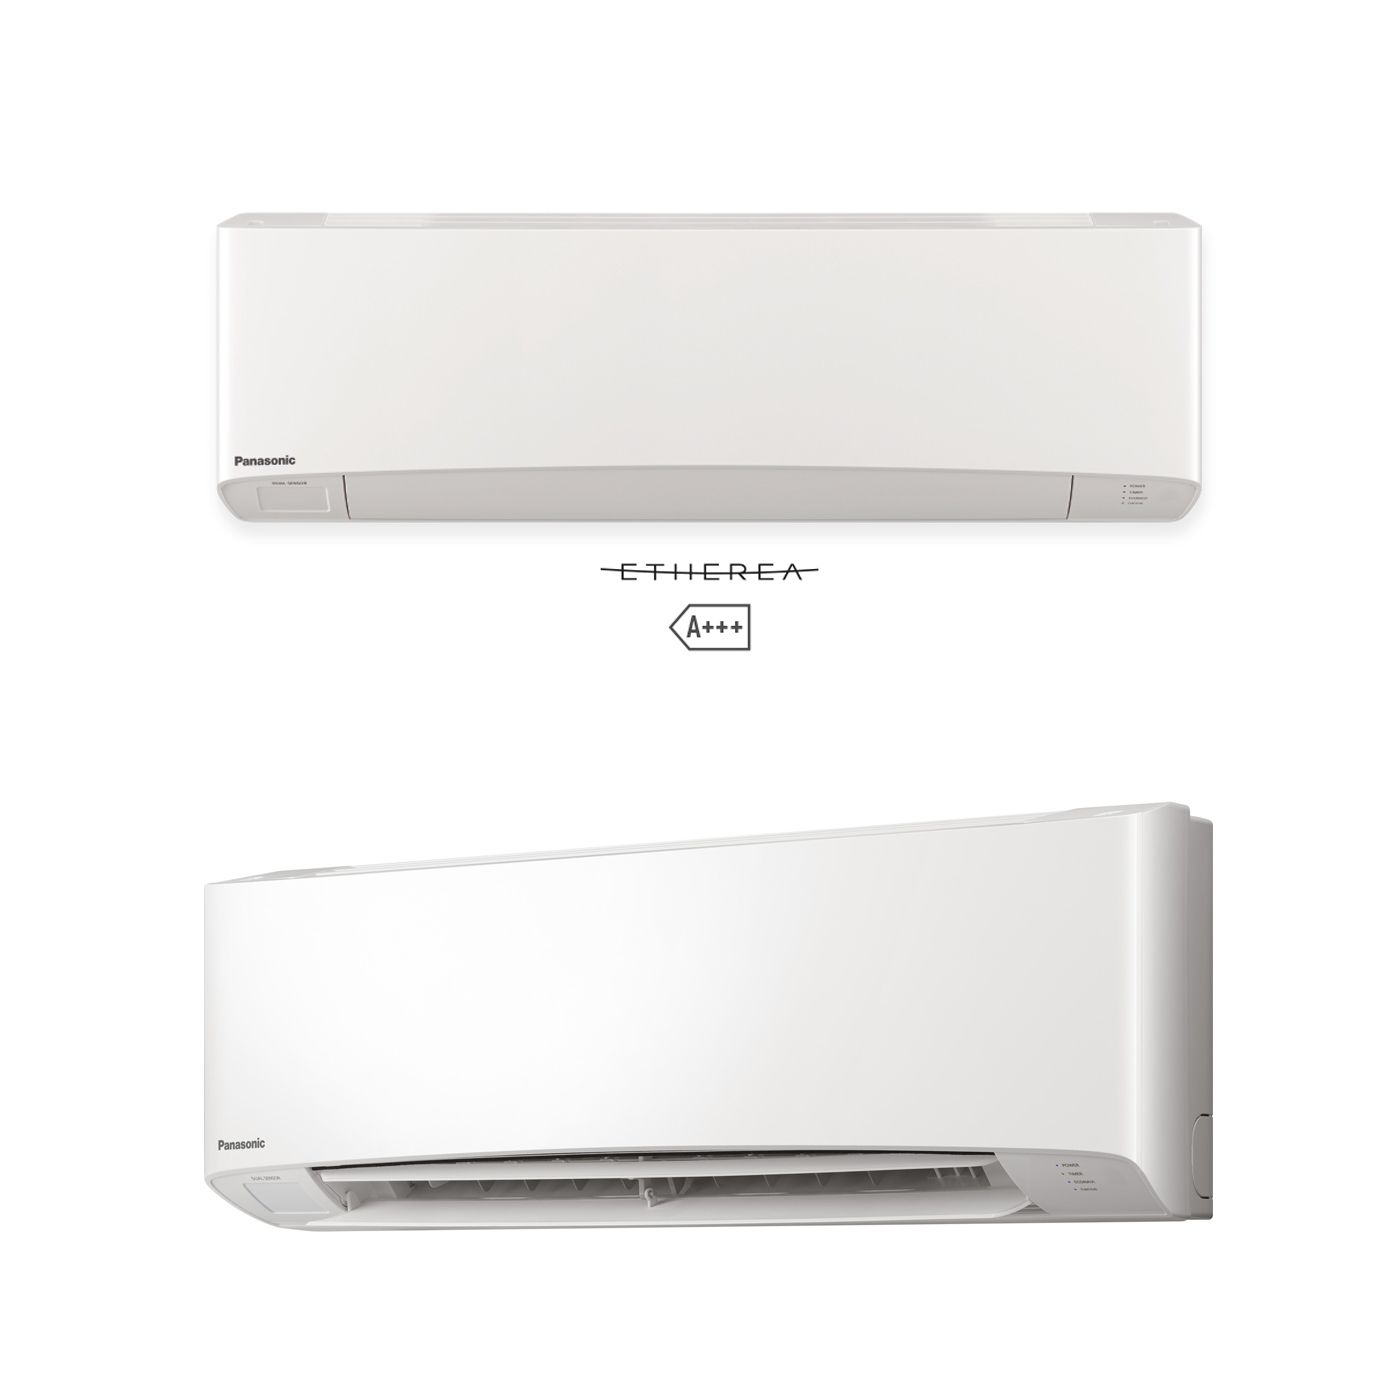 Panasonic Air Conditioning Etherea CS-Z50TKEW Wall Mounted